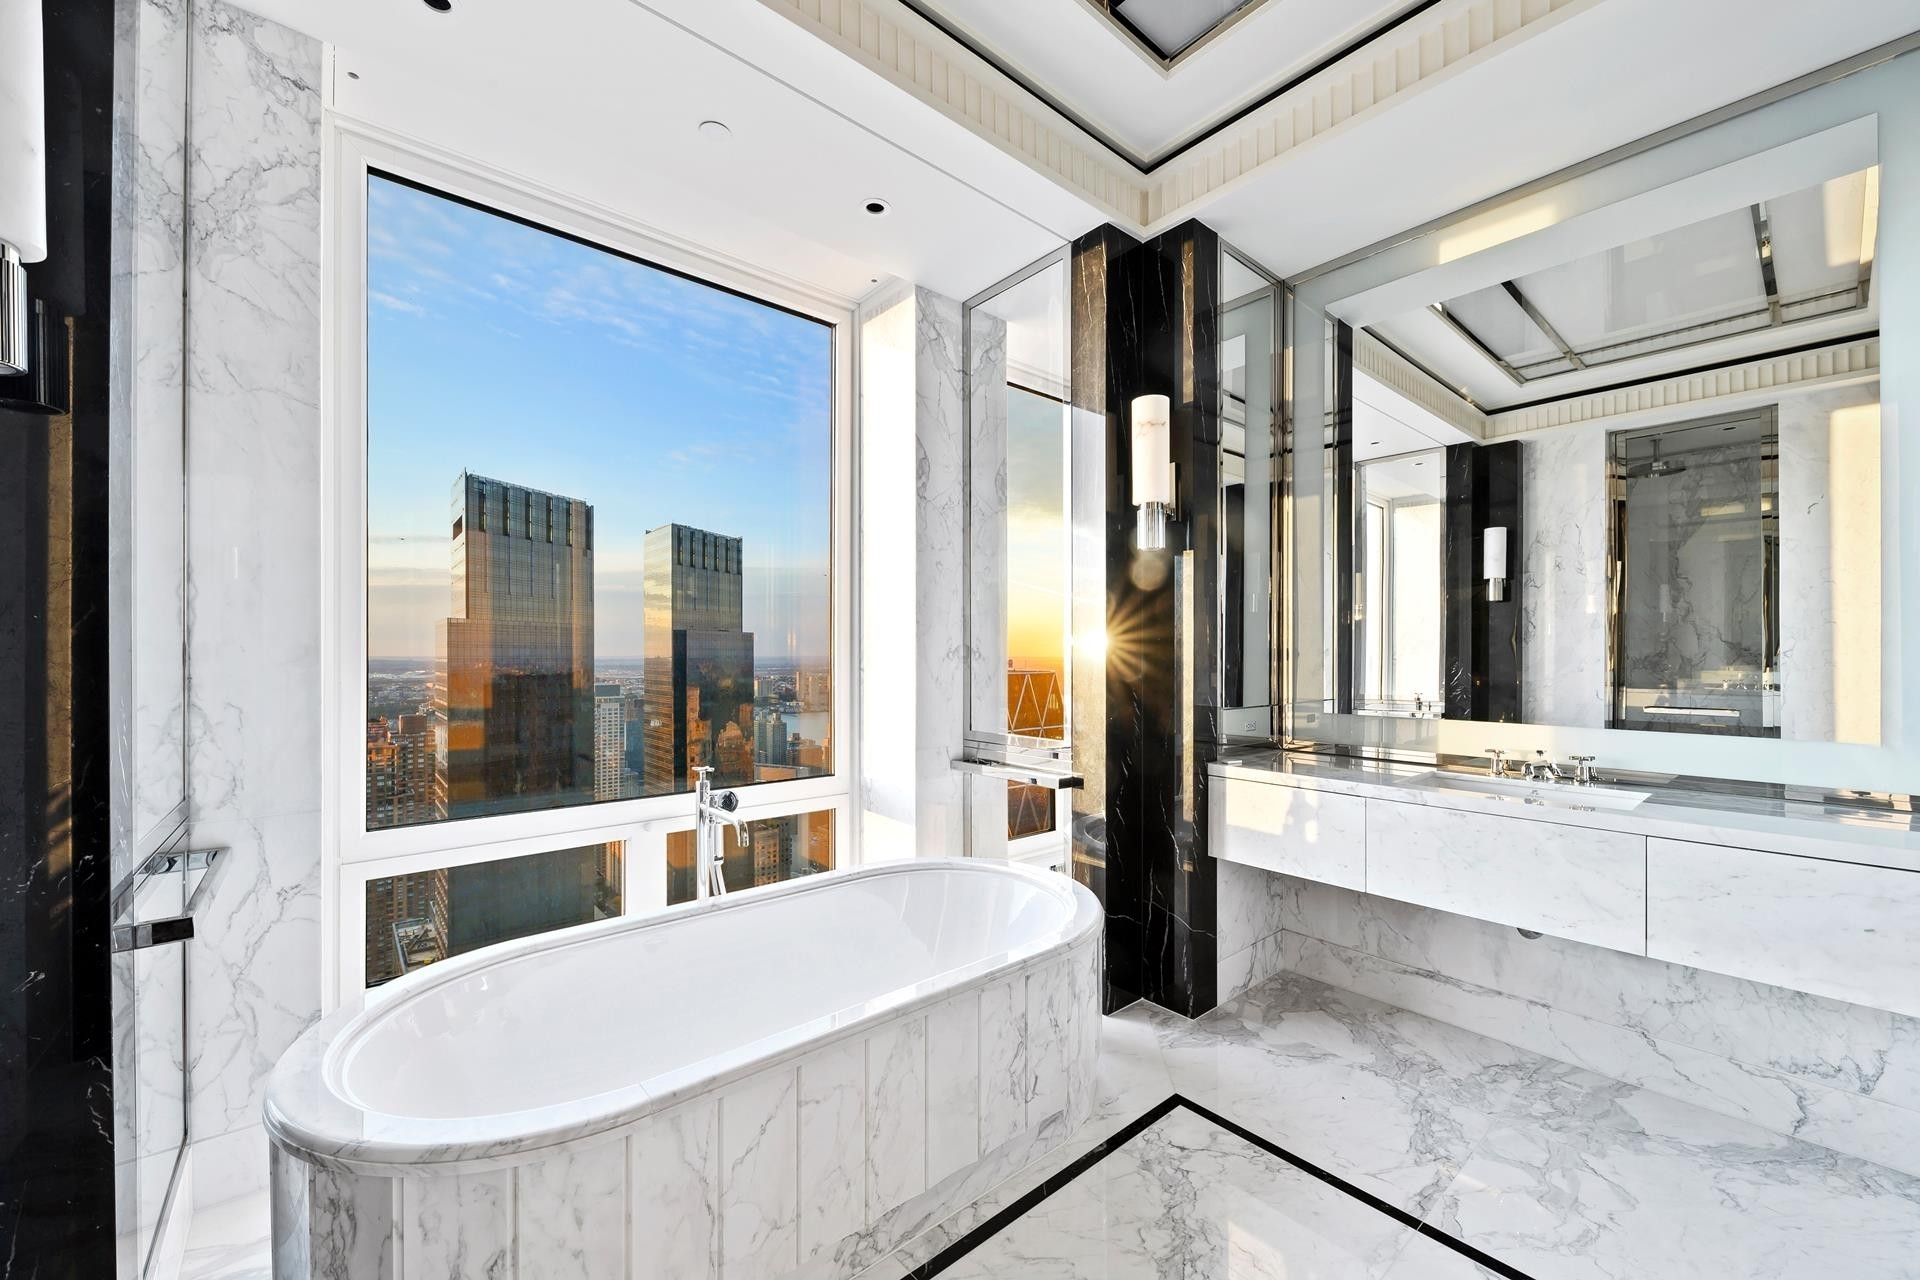 12. Condominiums for Sale at 220 CPS, 220 CENTRAL PARK S, 54/55A Central Park South, New York, NY 10019